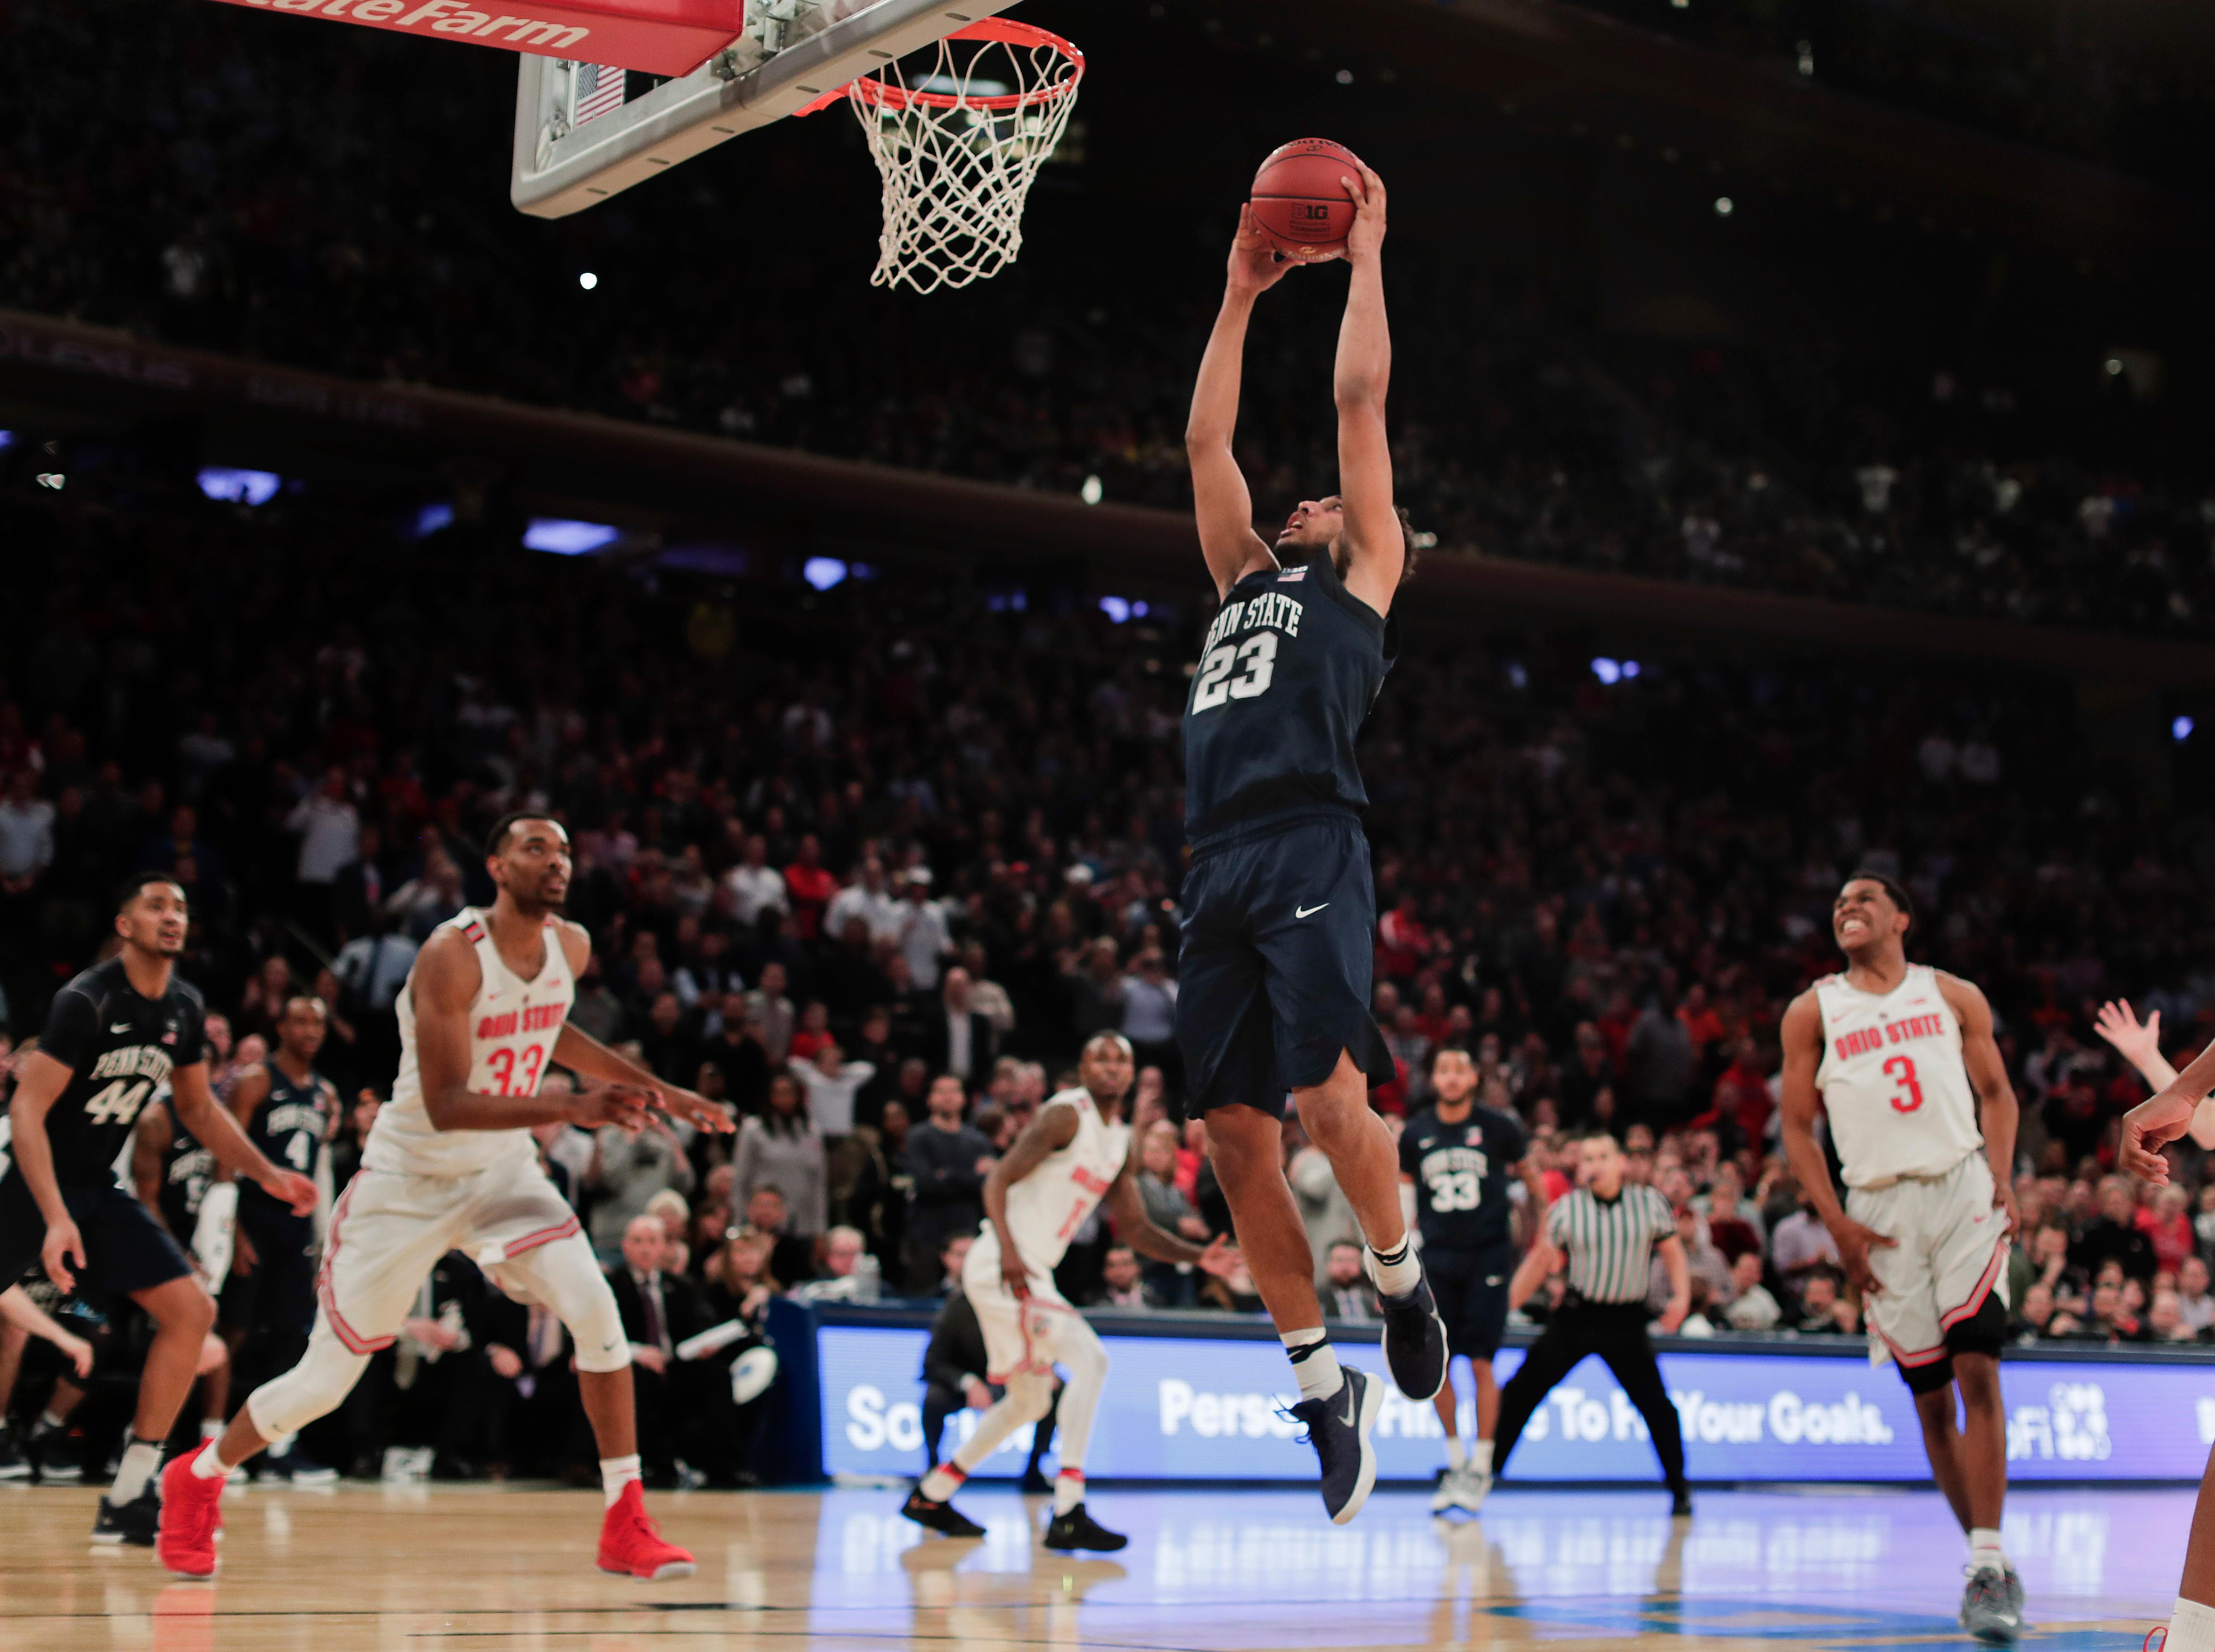 Penn State guard Josh Reaves (23) goes up for the go-ahead basket against Ohio State during the second half of an NCAA Big Ten Conference tournament college basketball game, Friday, March 2, 2018, in New York. Penn State won 69-68. (AP Photo/Julie Jacobson)